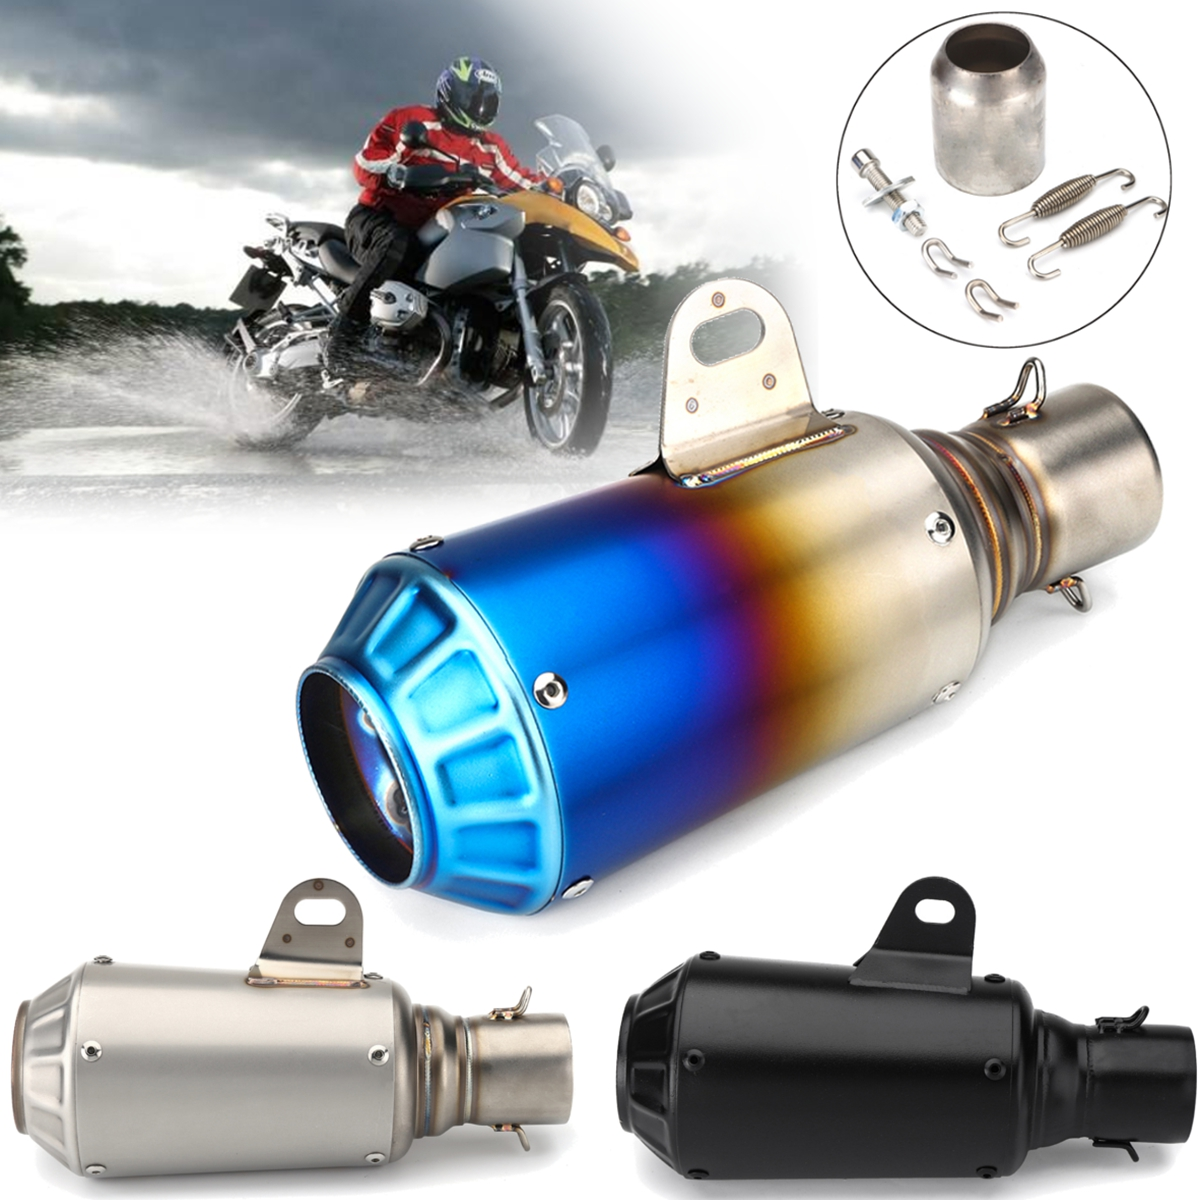 38-51mm Motorcycle Exhaust Muffler Modify Pipe Motocross Exhaust Modified Outlet System Stainless Steel Scooter for Honda